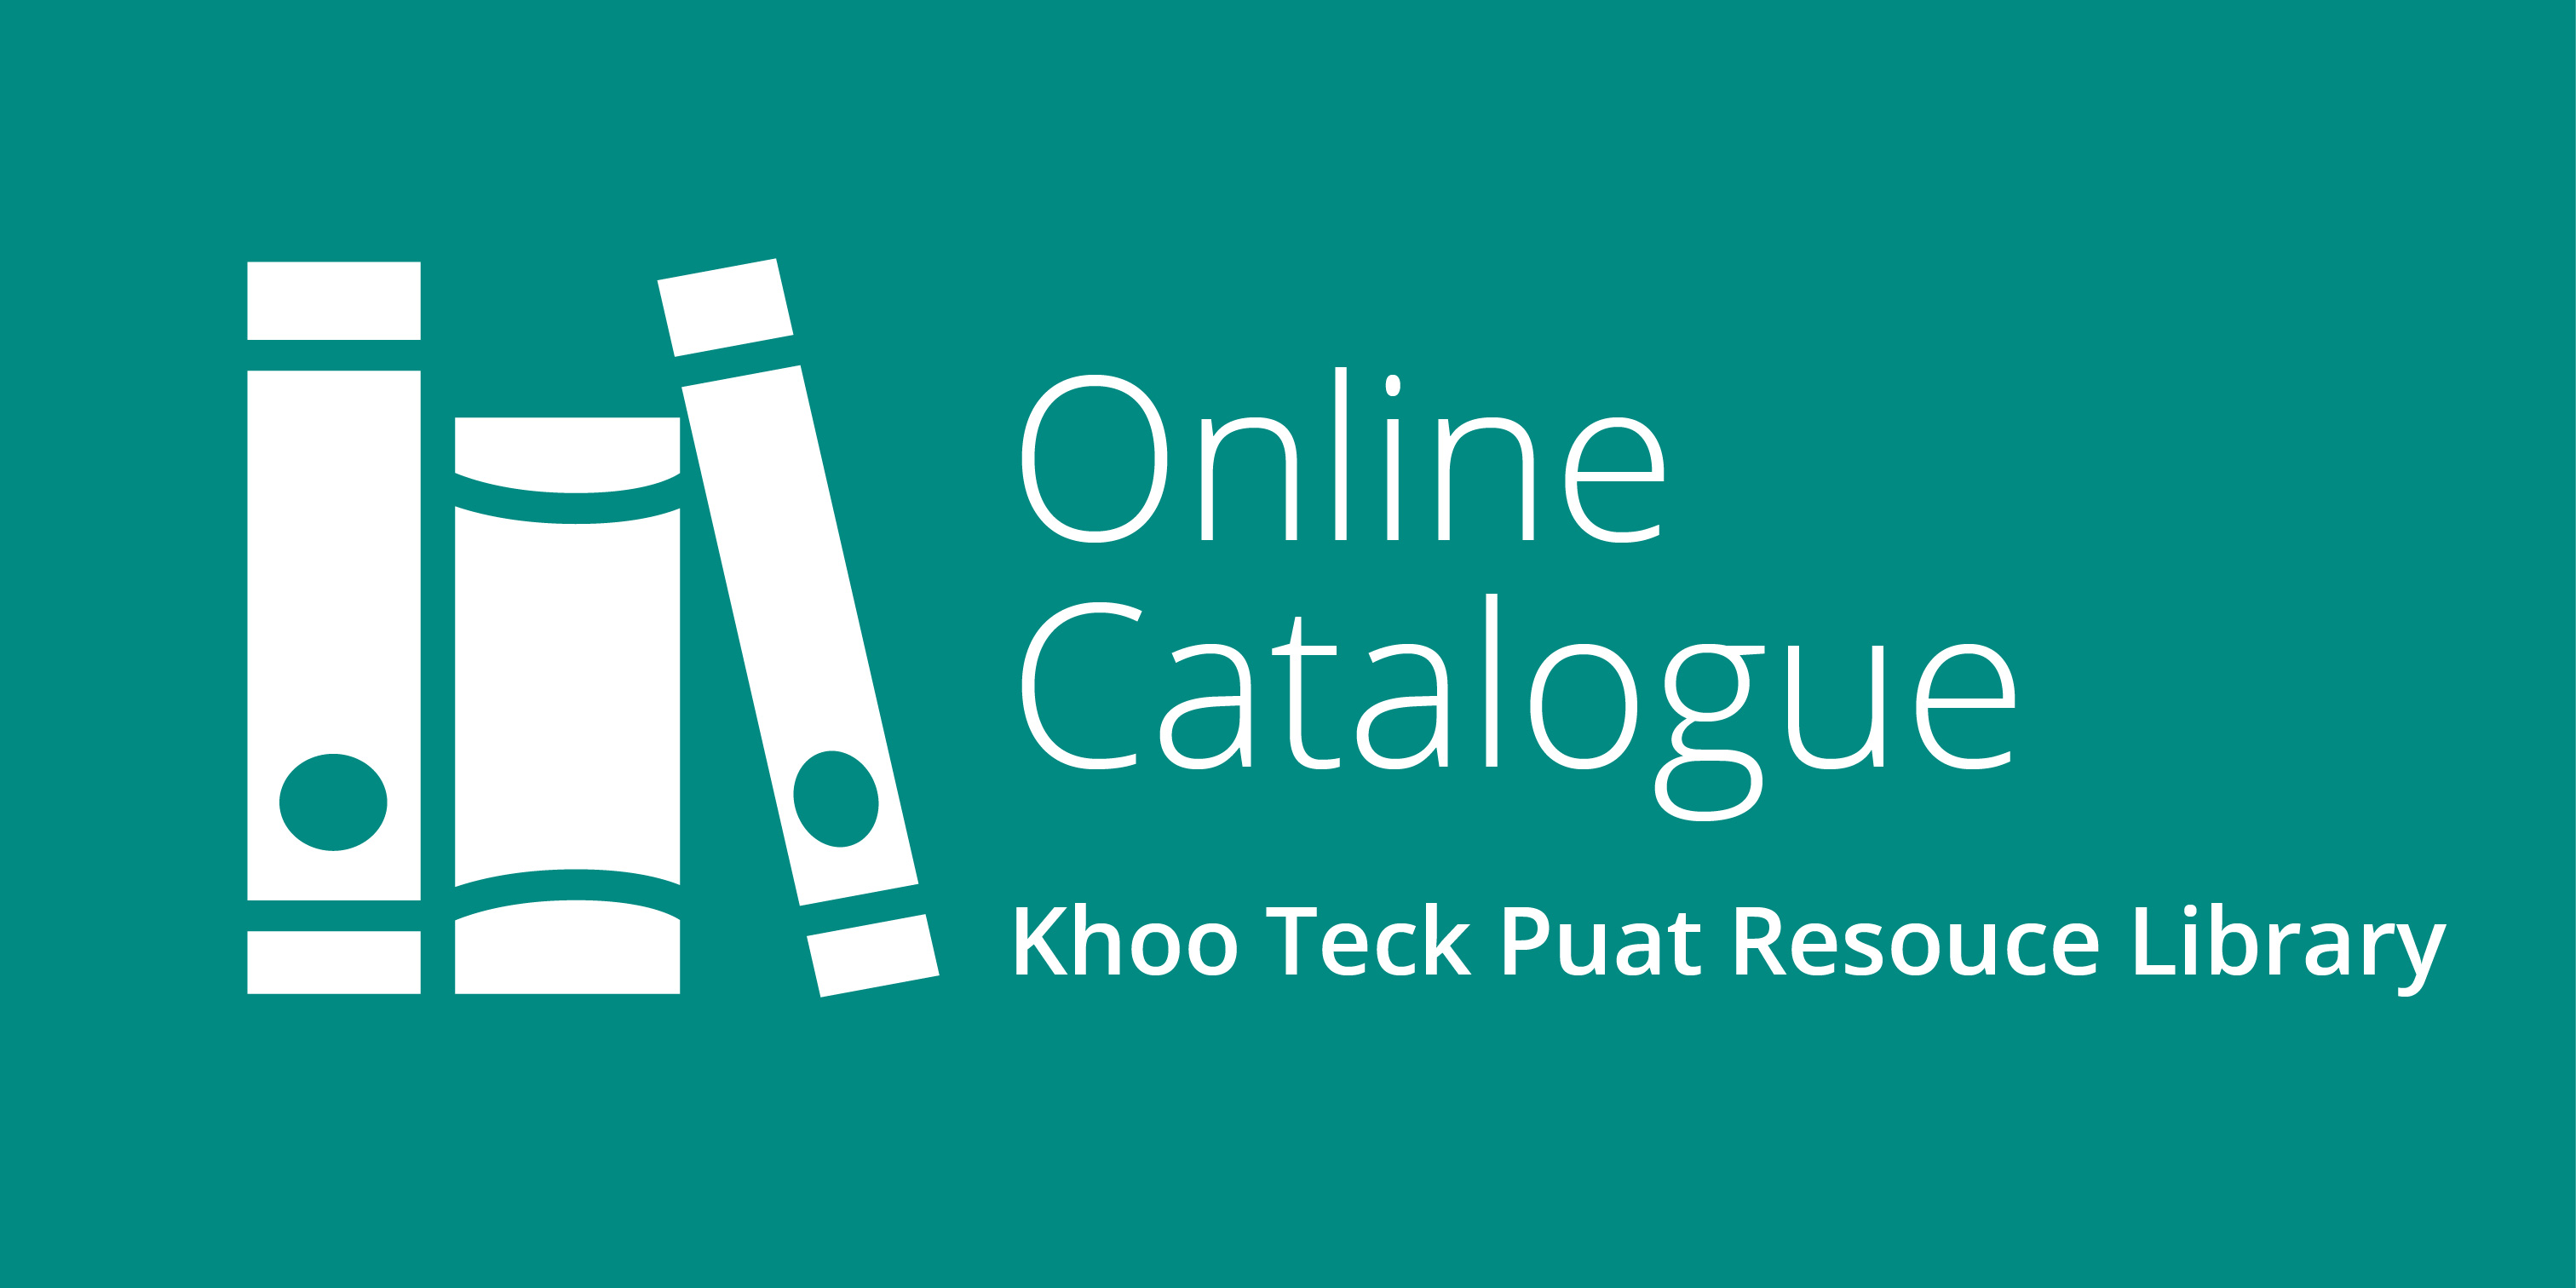 Online Library Catalogue